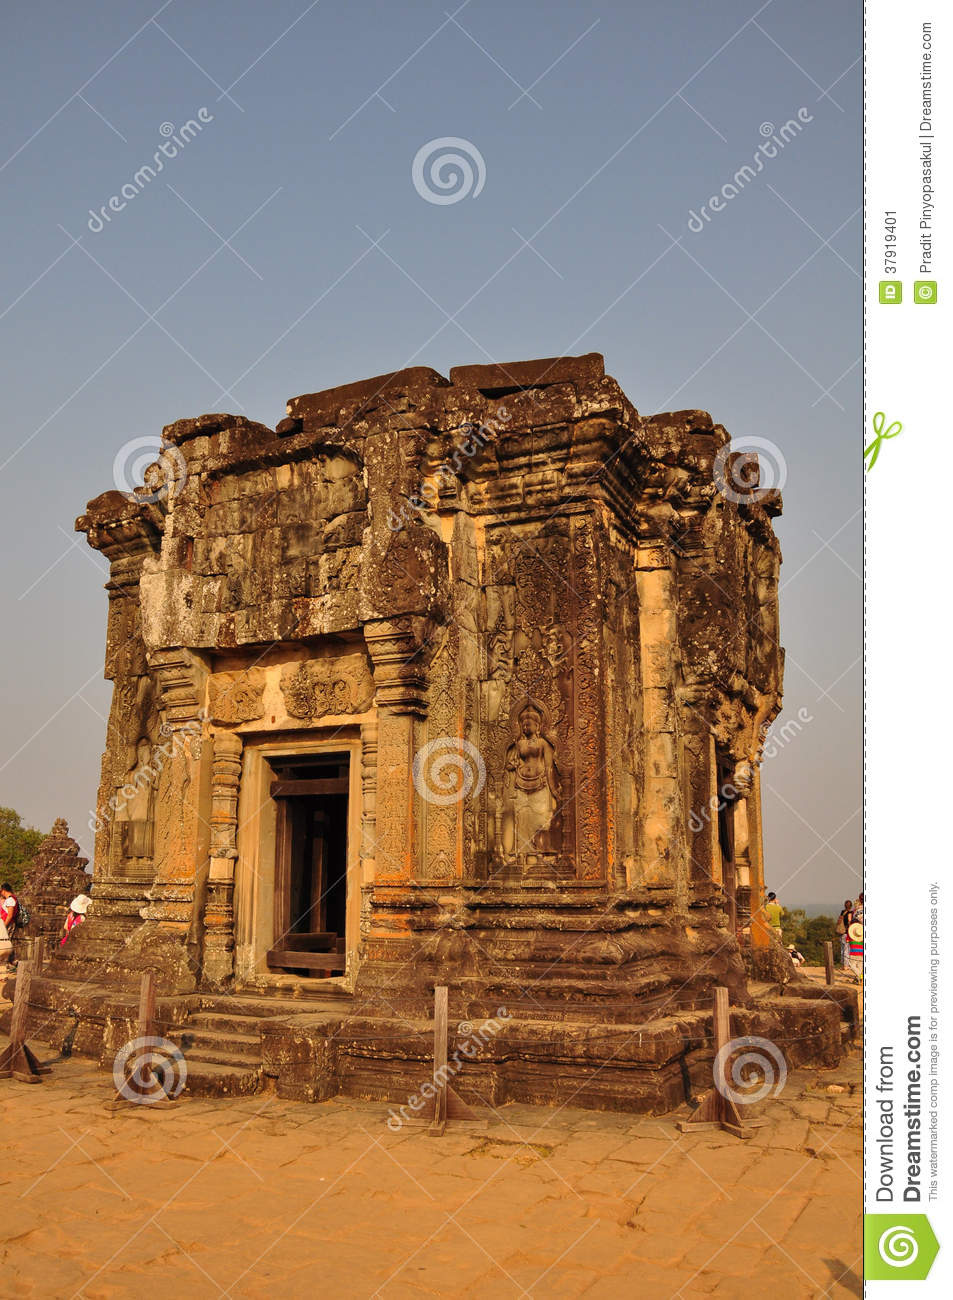 Best Places to Visit in Siem Reap Cambodia  |Phnom Bakheng Temple